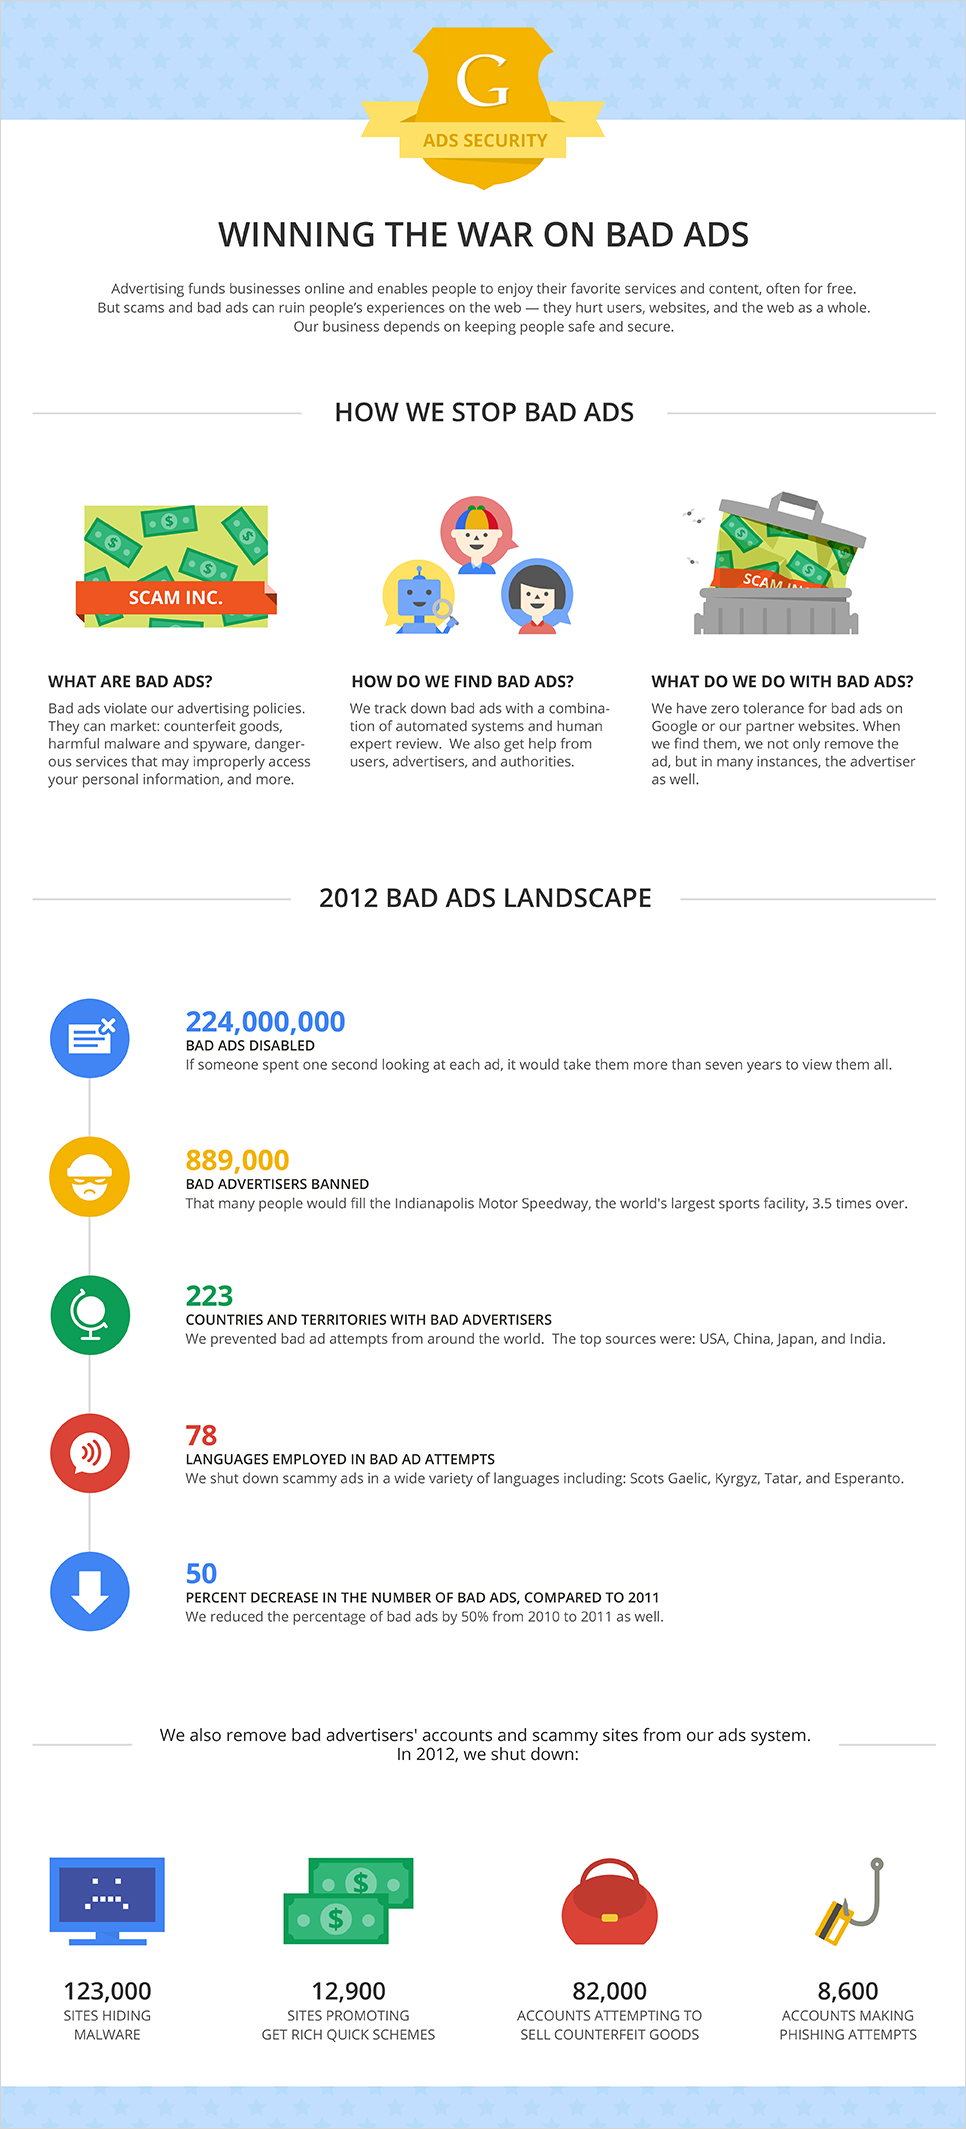 How Google is Winning the War on Bad Ads - Infographic